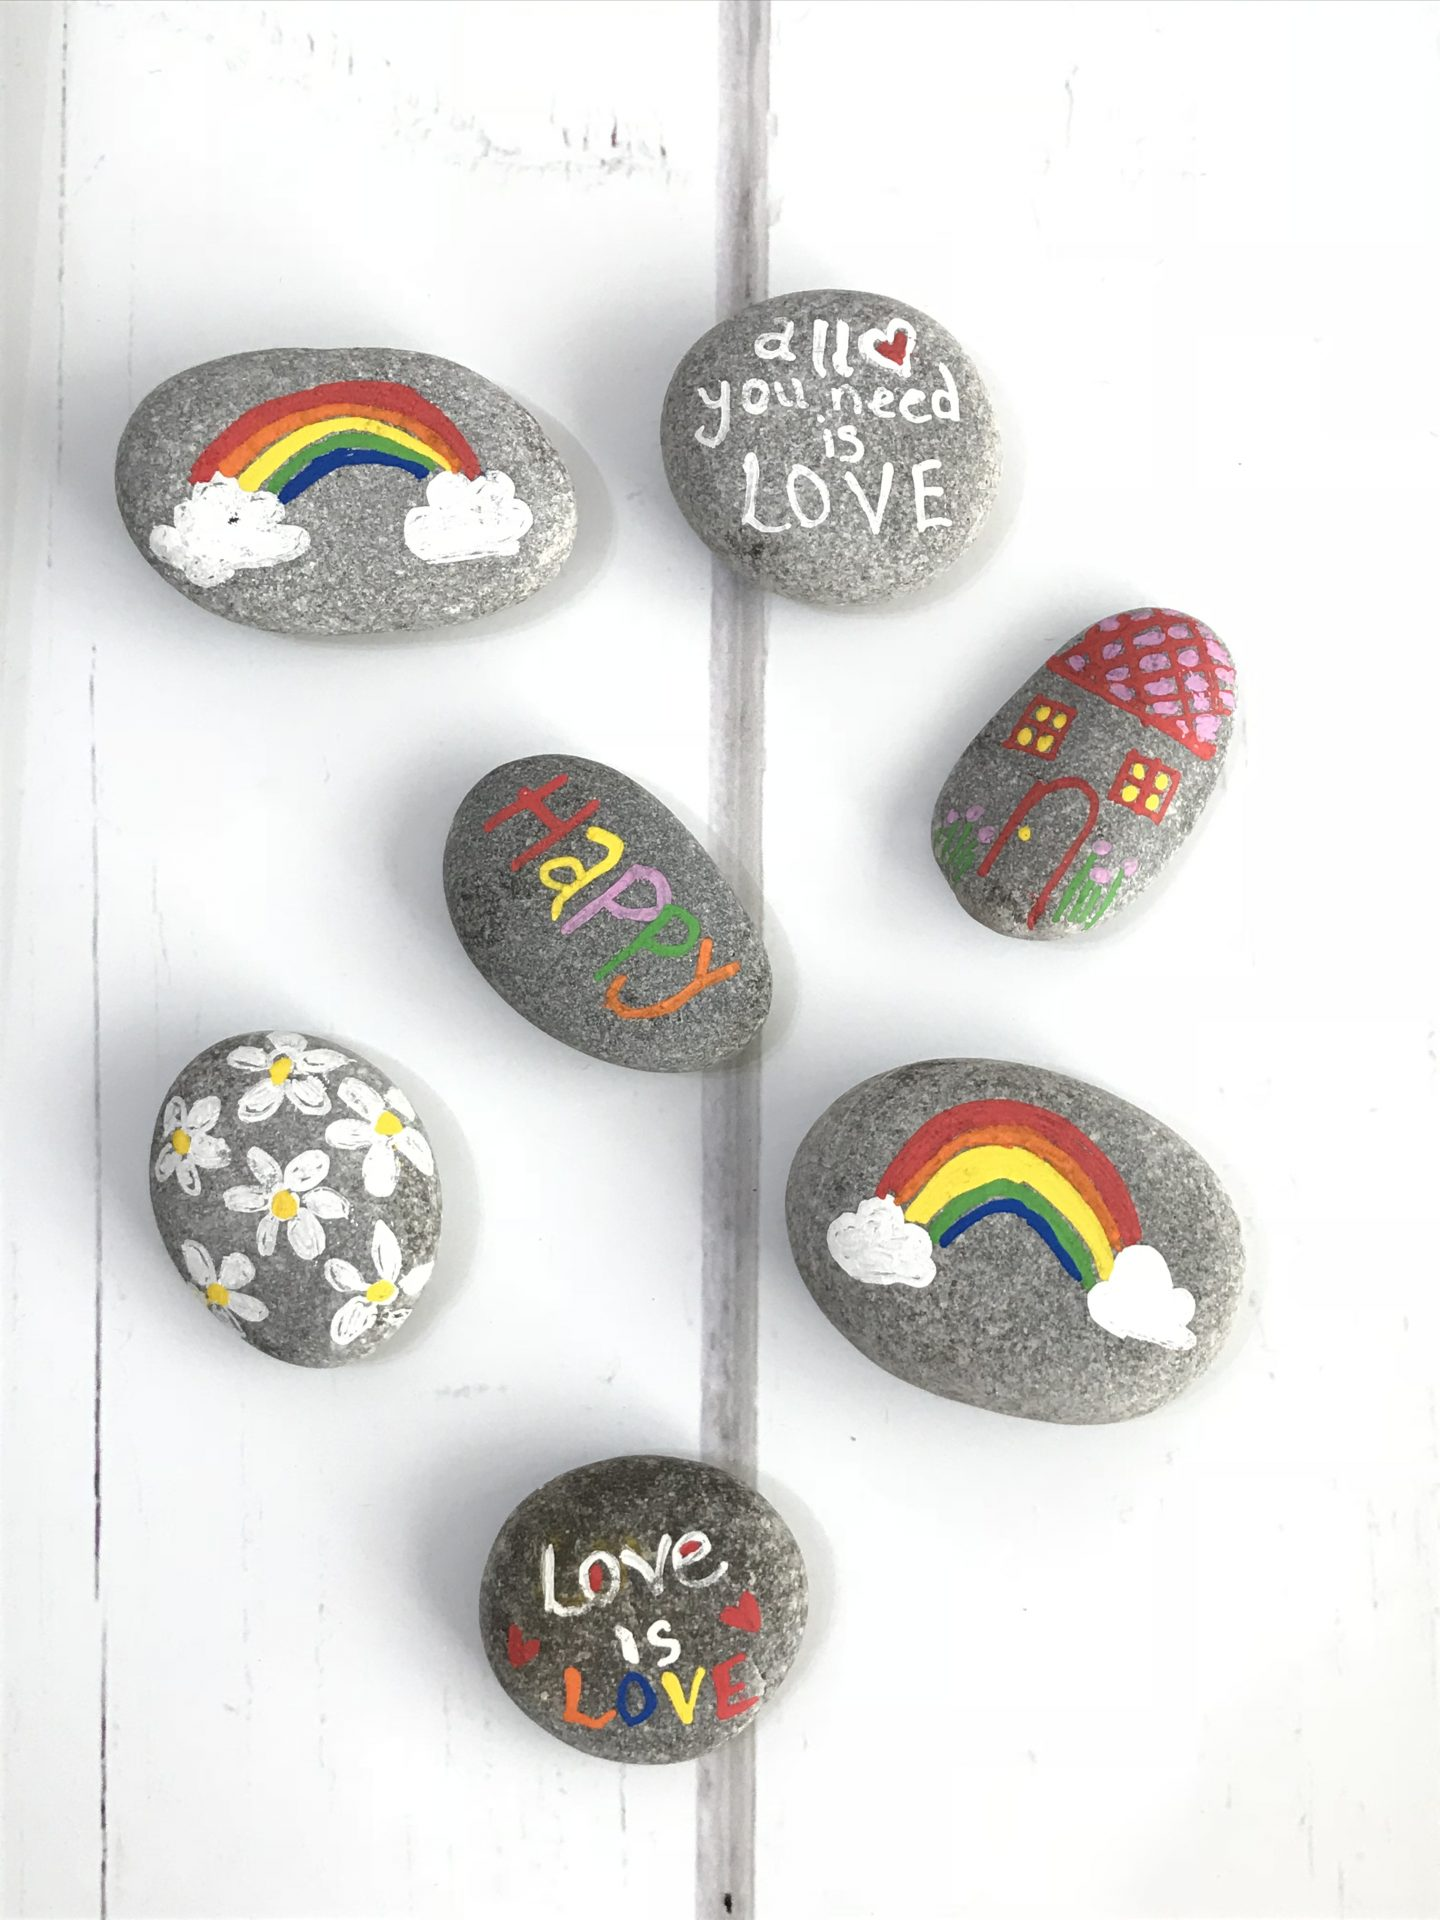 happiness rocks, create your own happy . becky goddard-hill, penny alexander